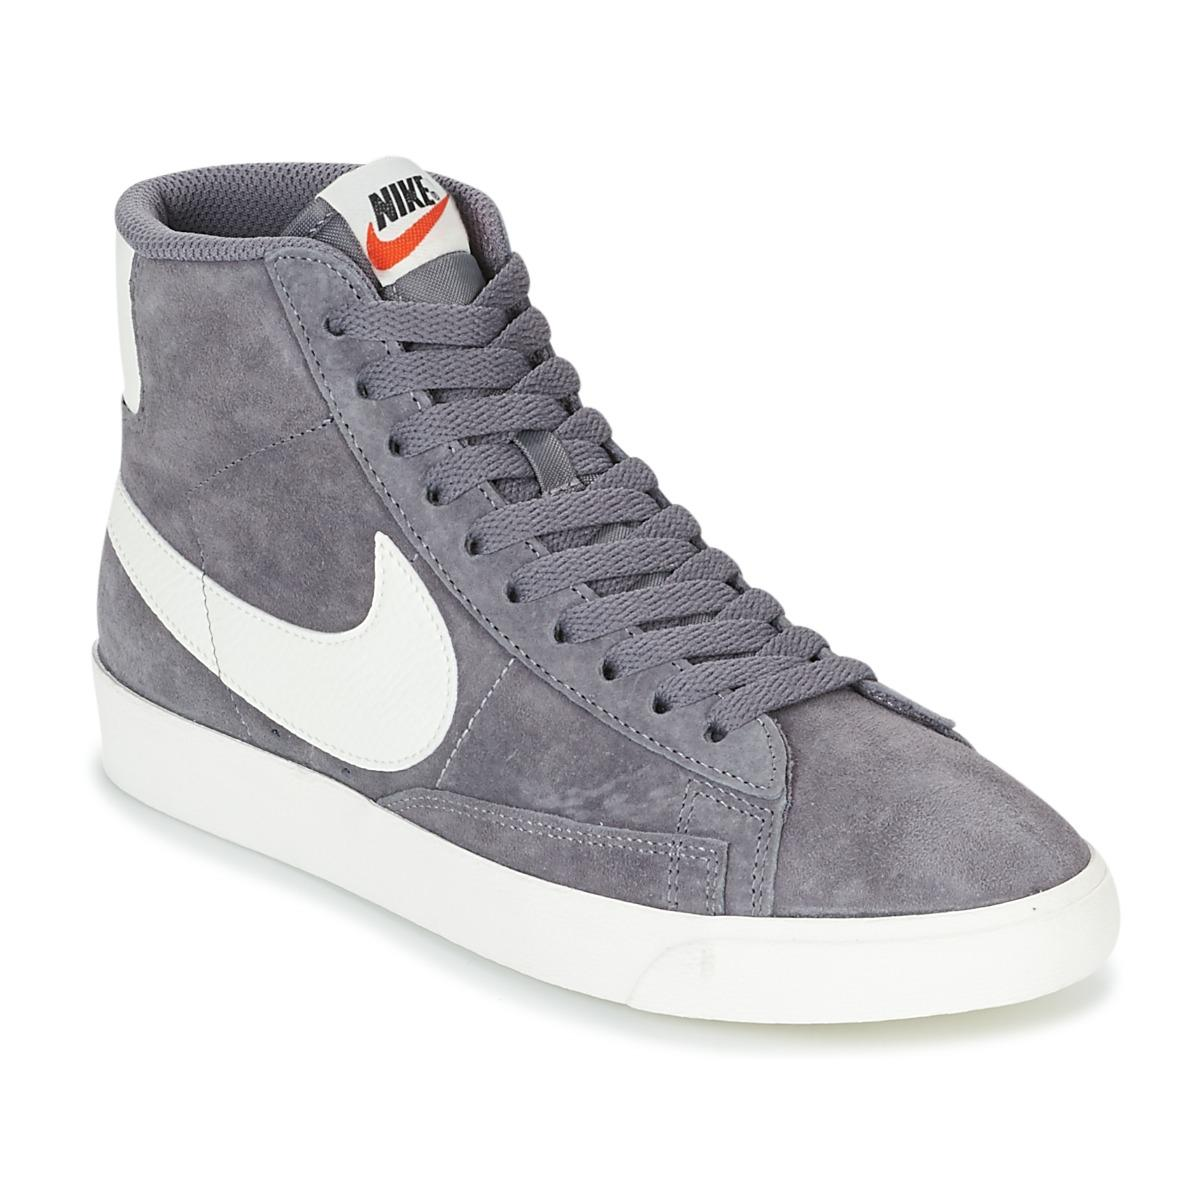 Nike Blazer Mid Suede Vintage W Women s Shoes (high-top Trainers) In ... 74cc17c3f1